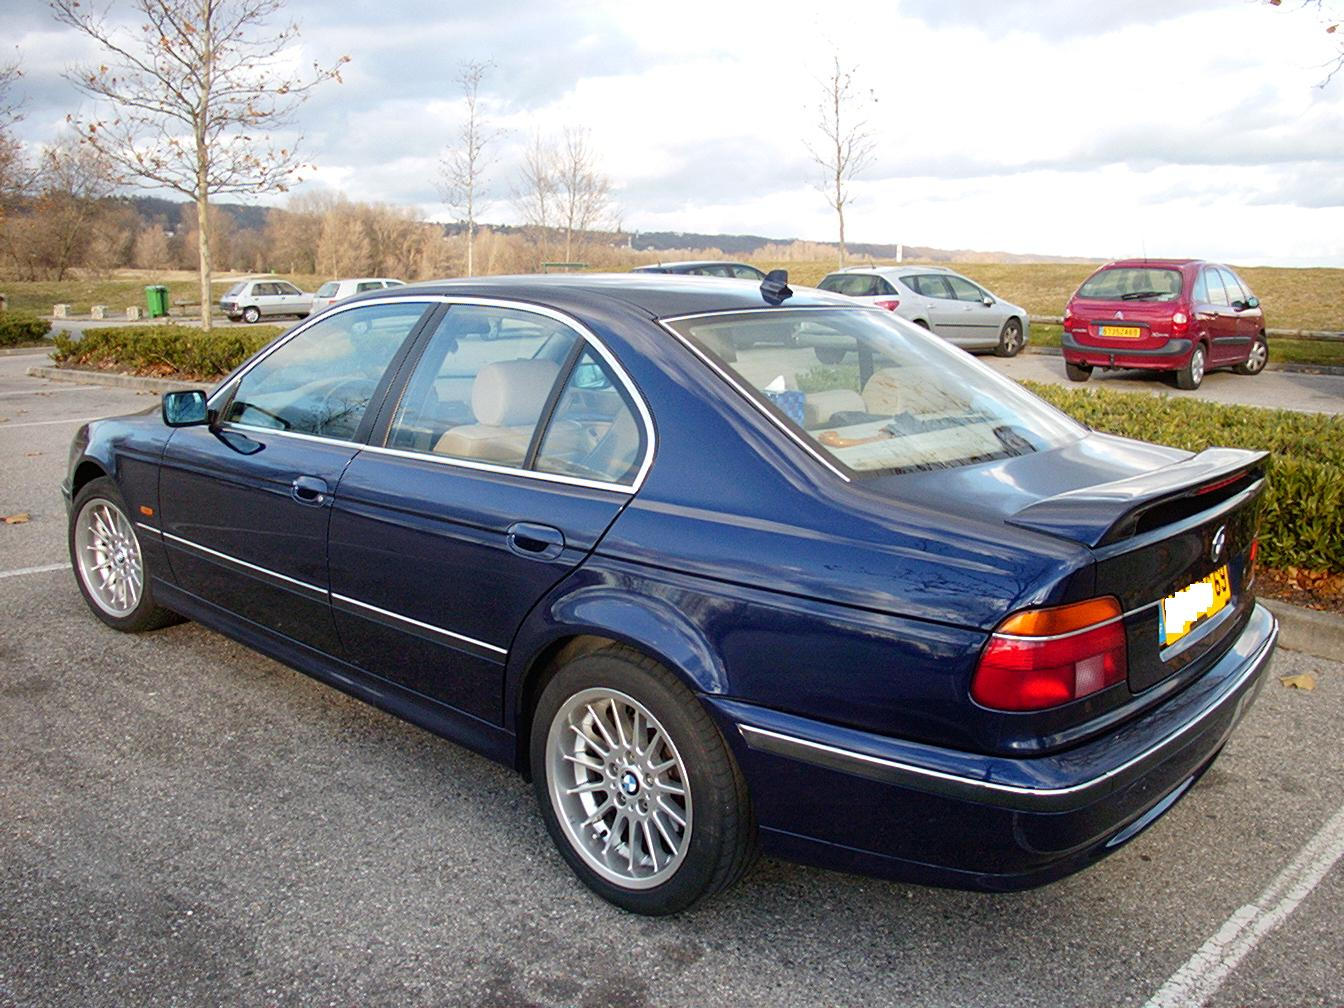 Download bmw 525i in many resolutions bellow